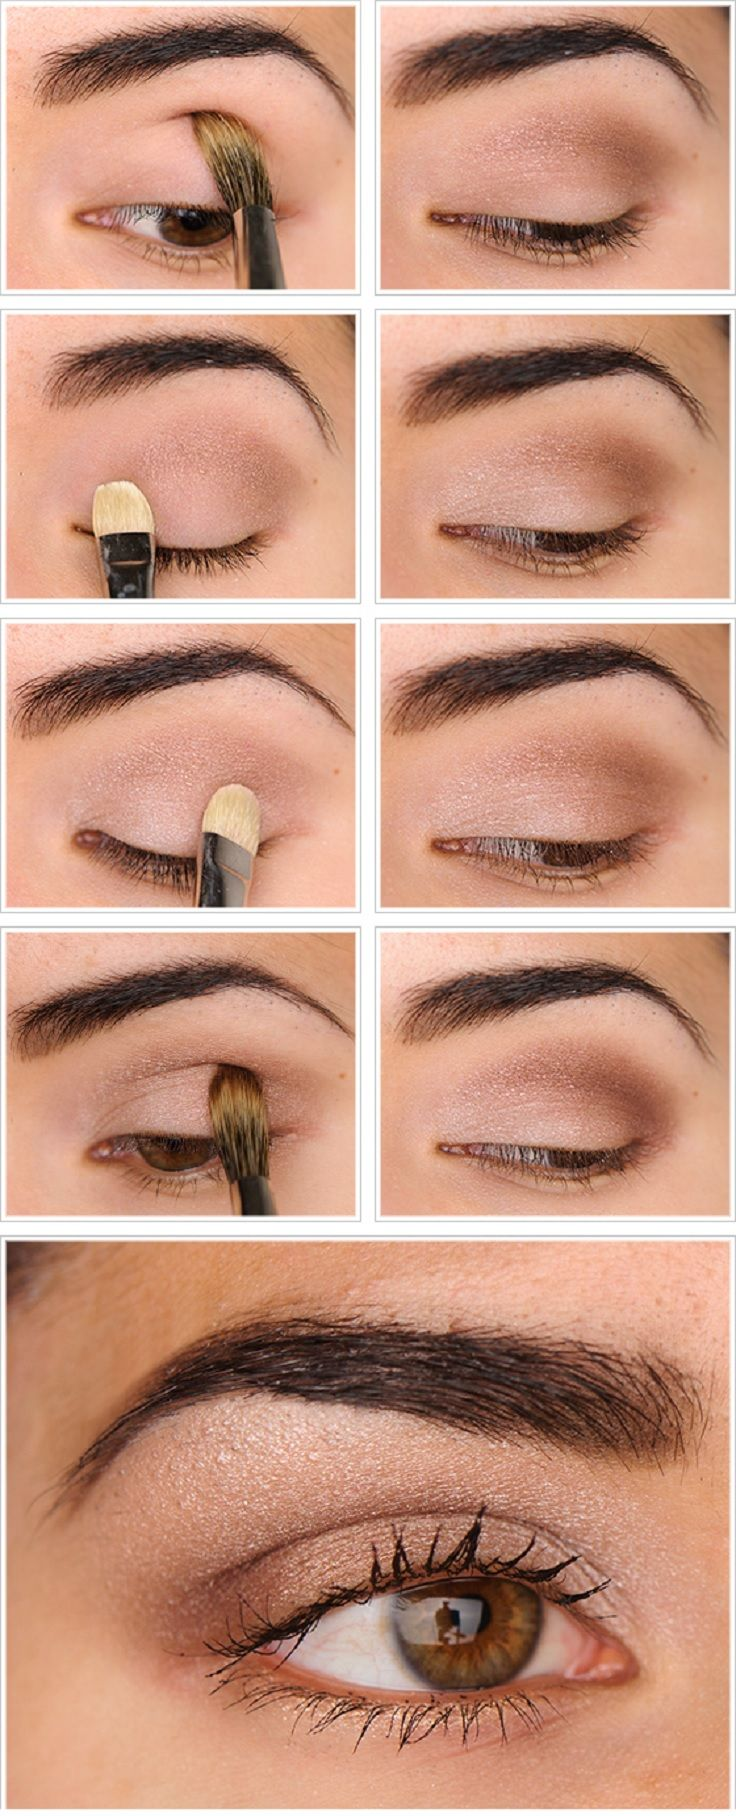 A nice thin strip of eyeliner (a little bit winged) would make this look even better :)